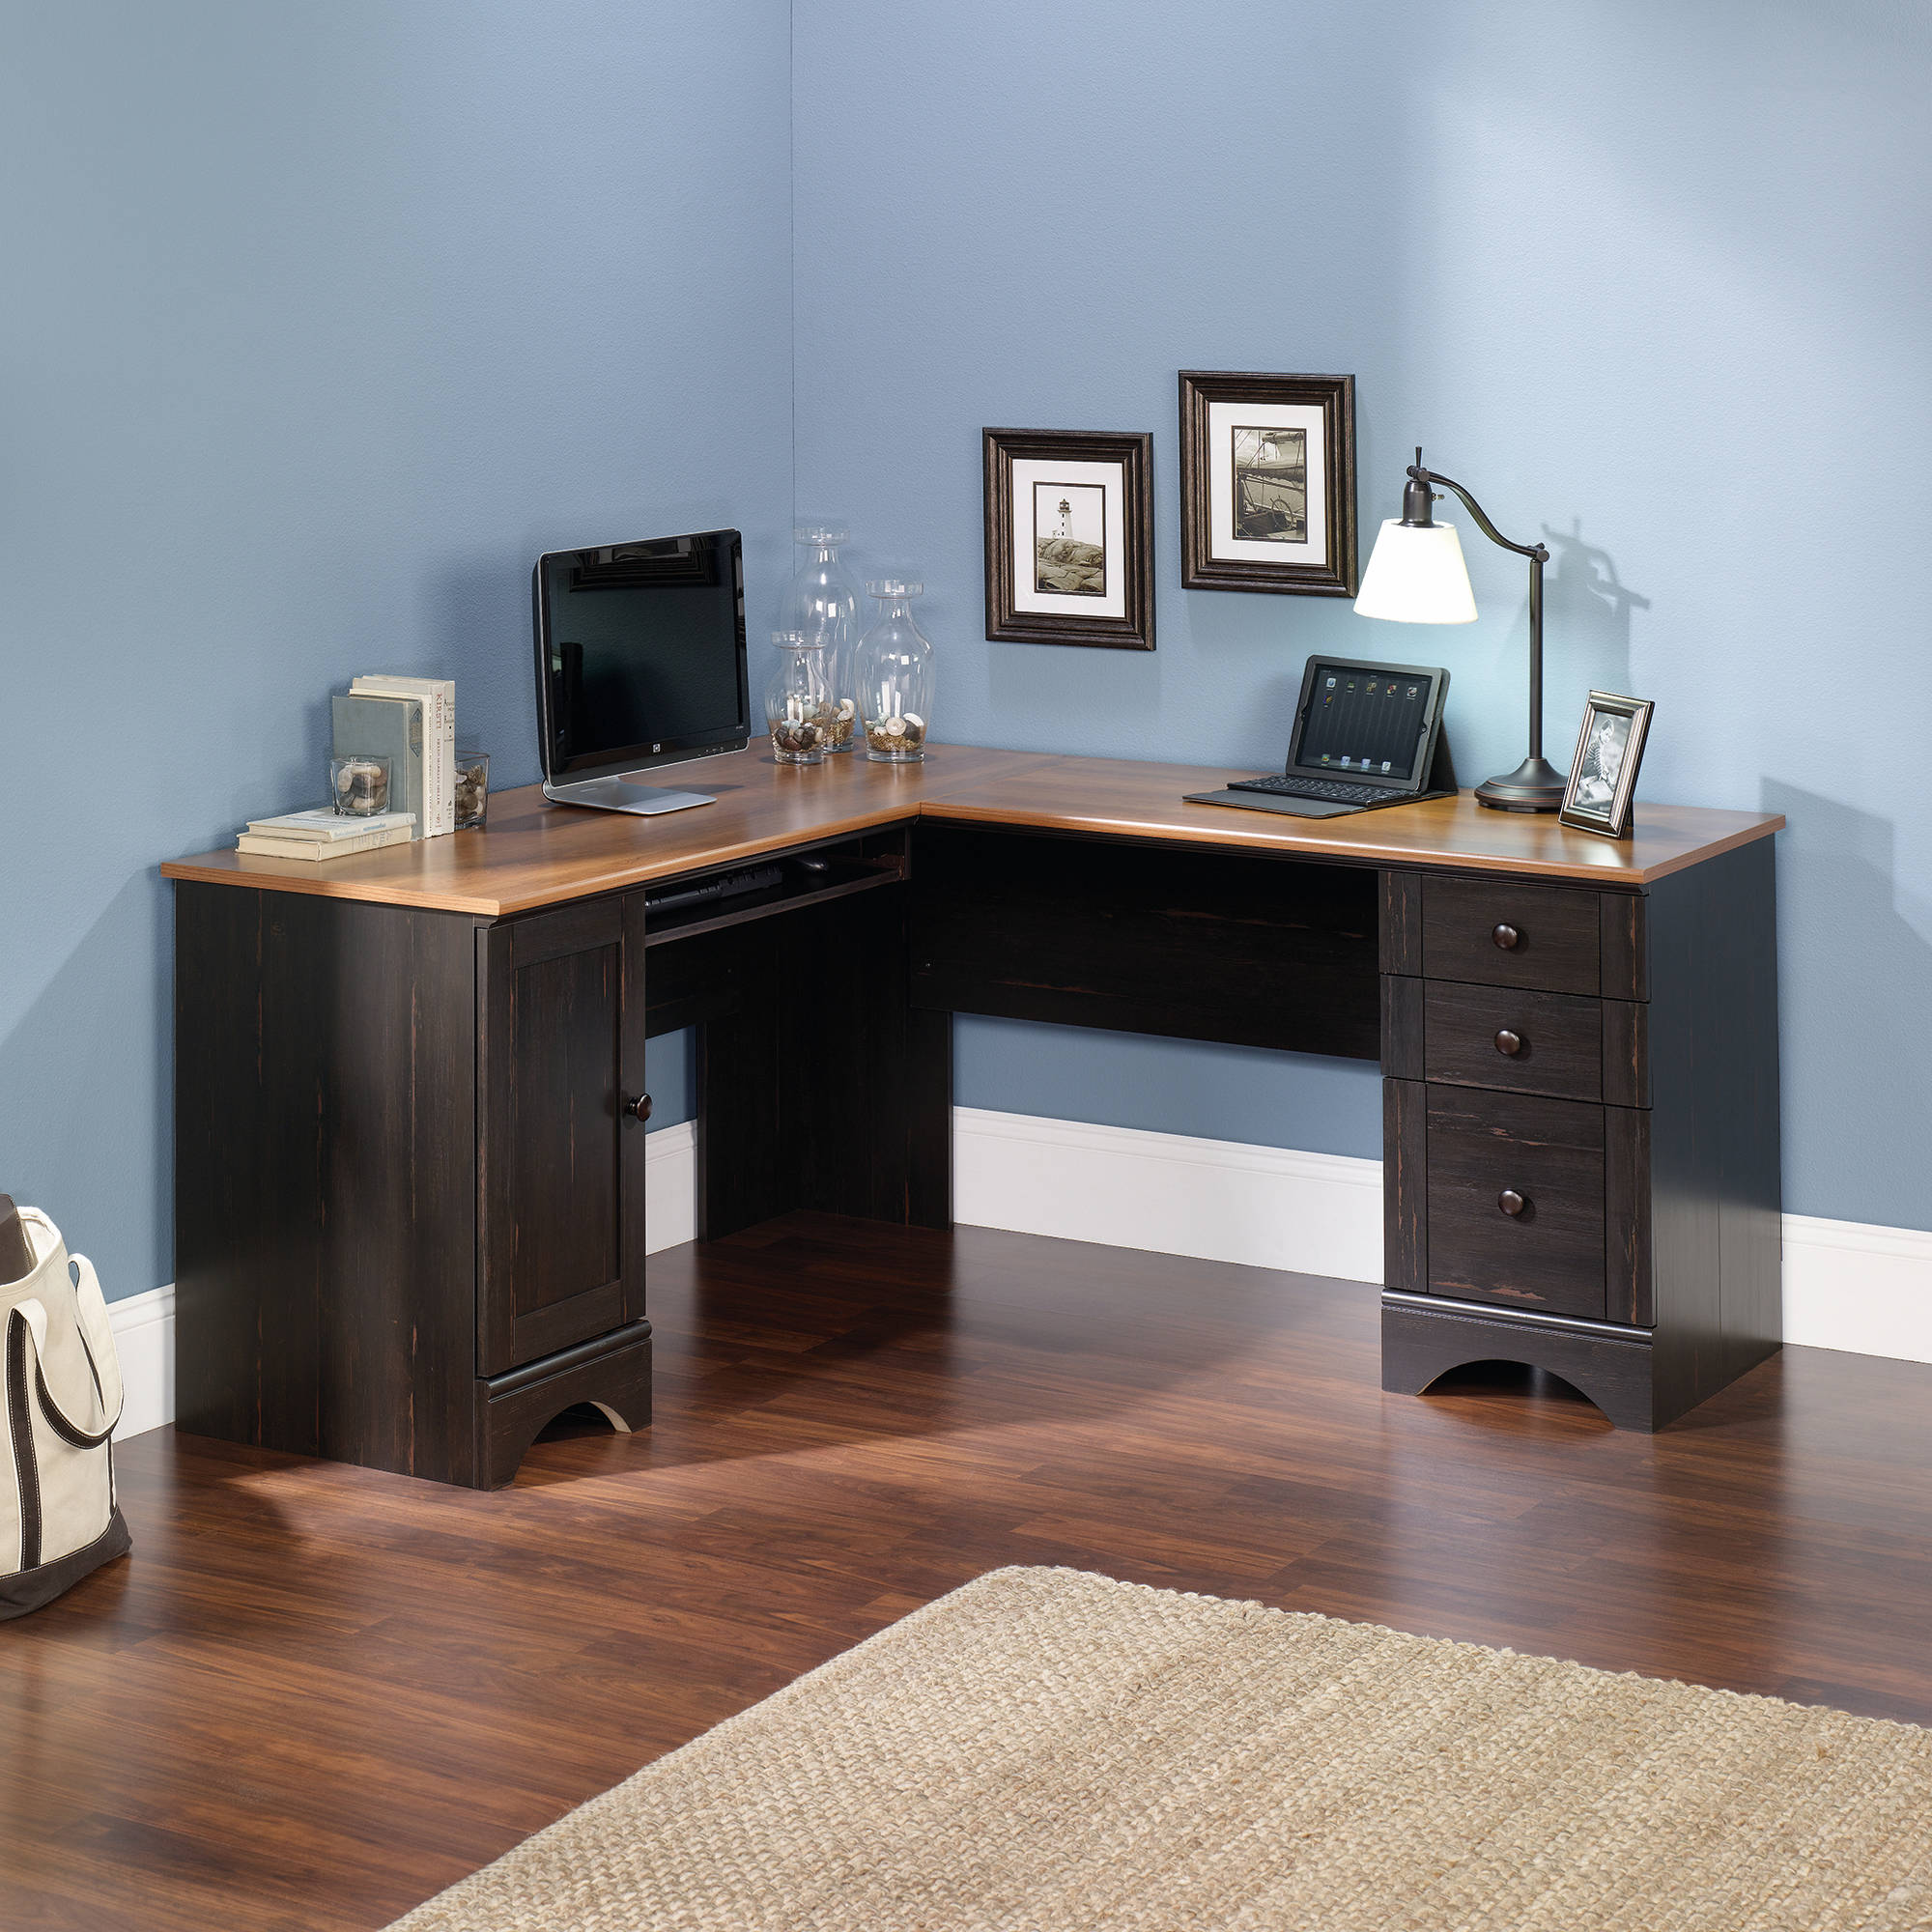 Sauder Harbor View Corner Computer Desk, Antiqued Paint Finish   Walmart.com